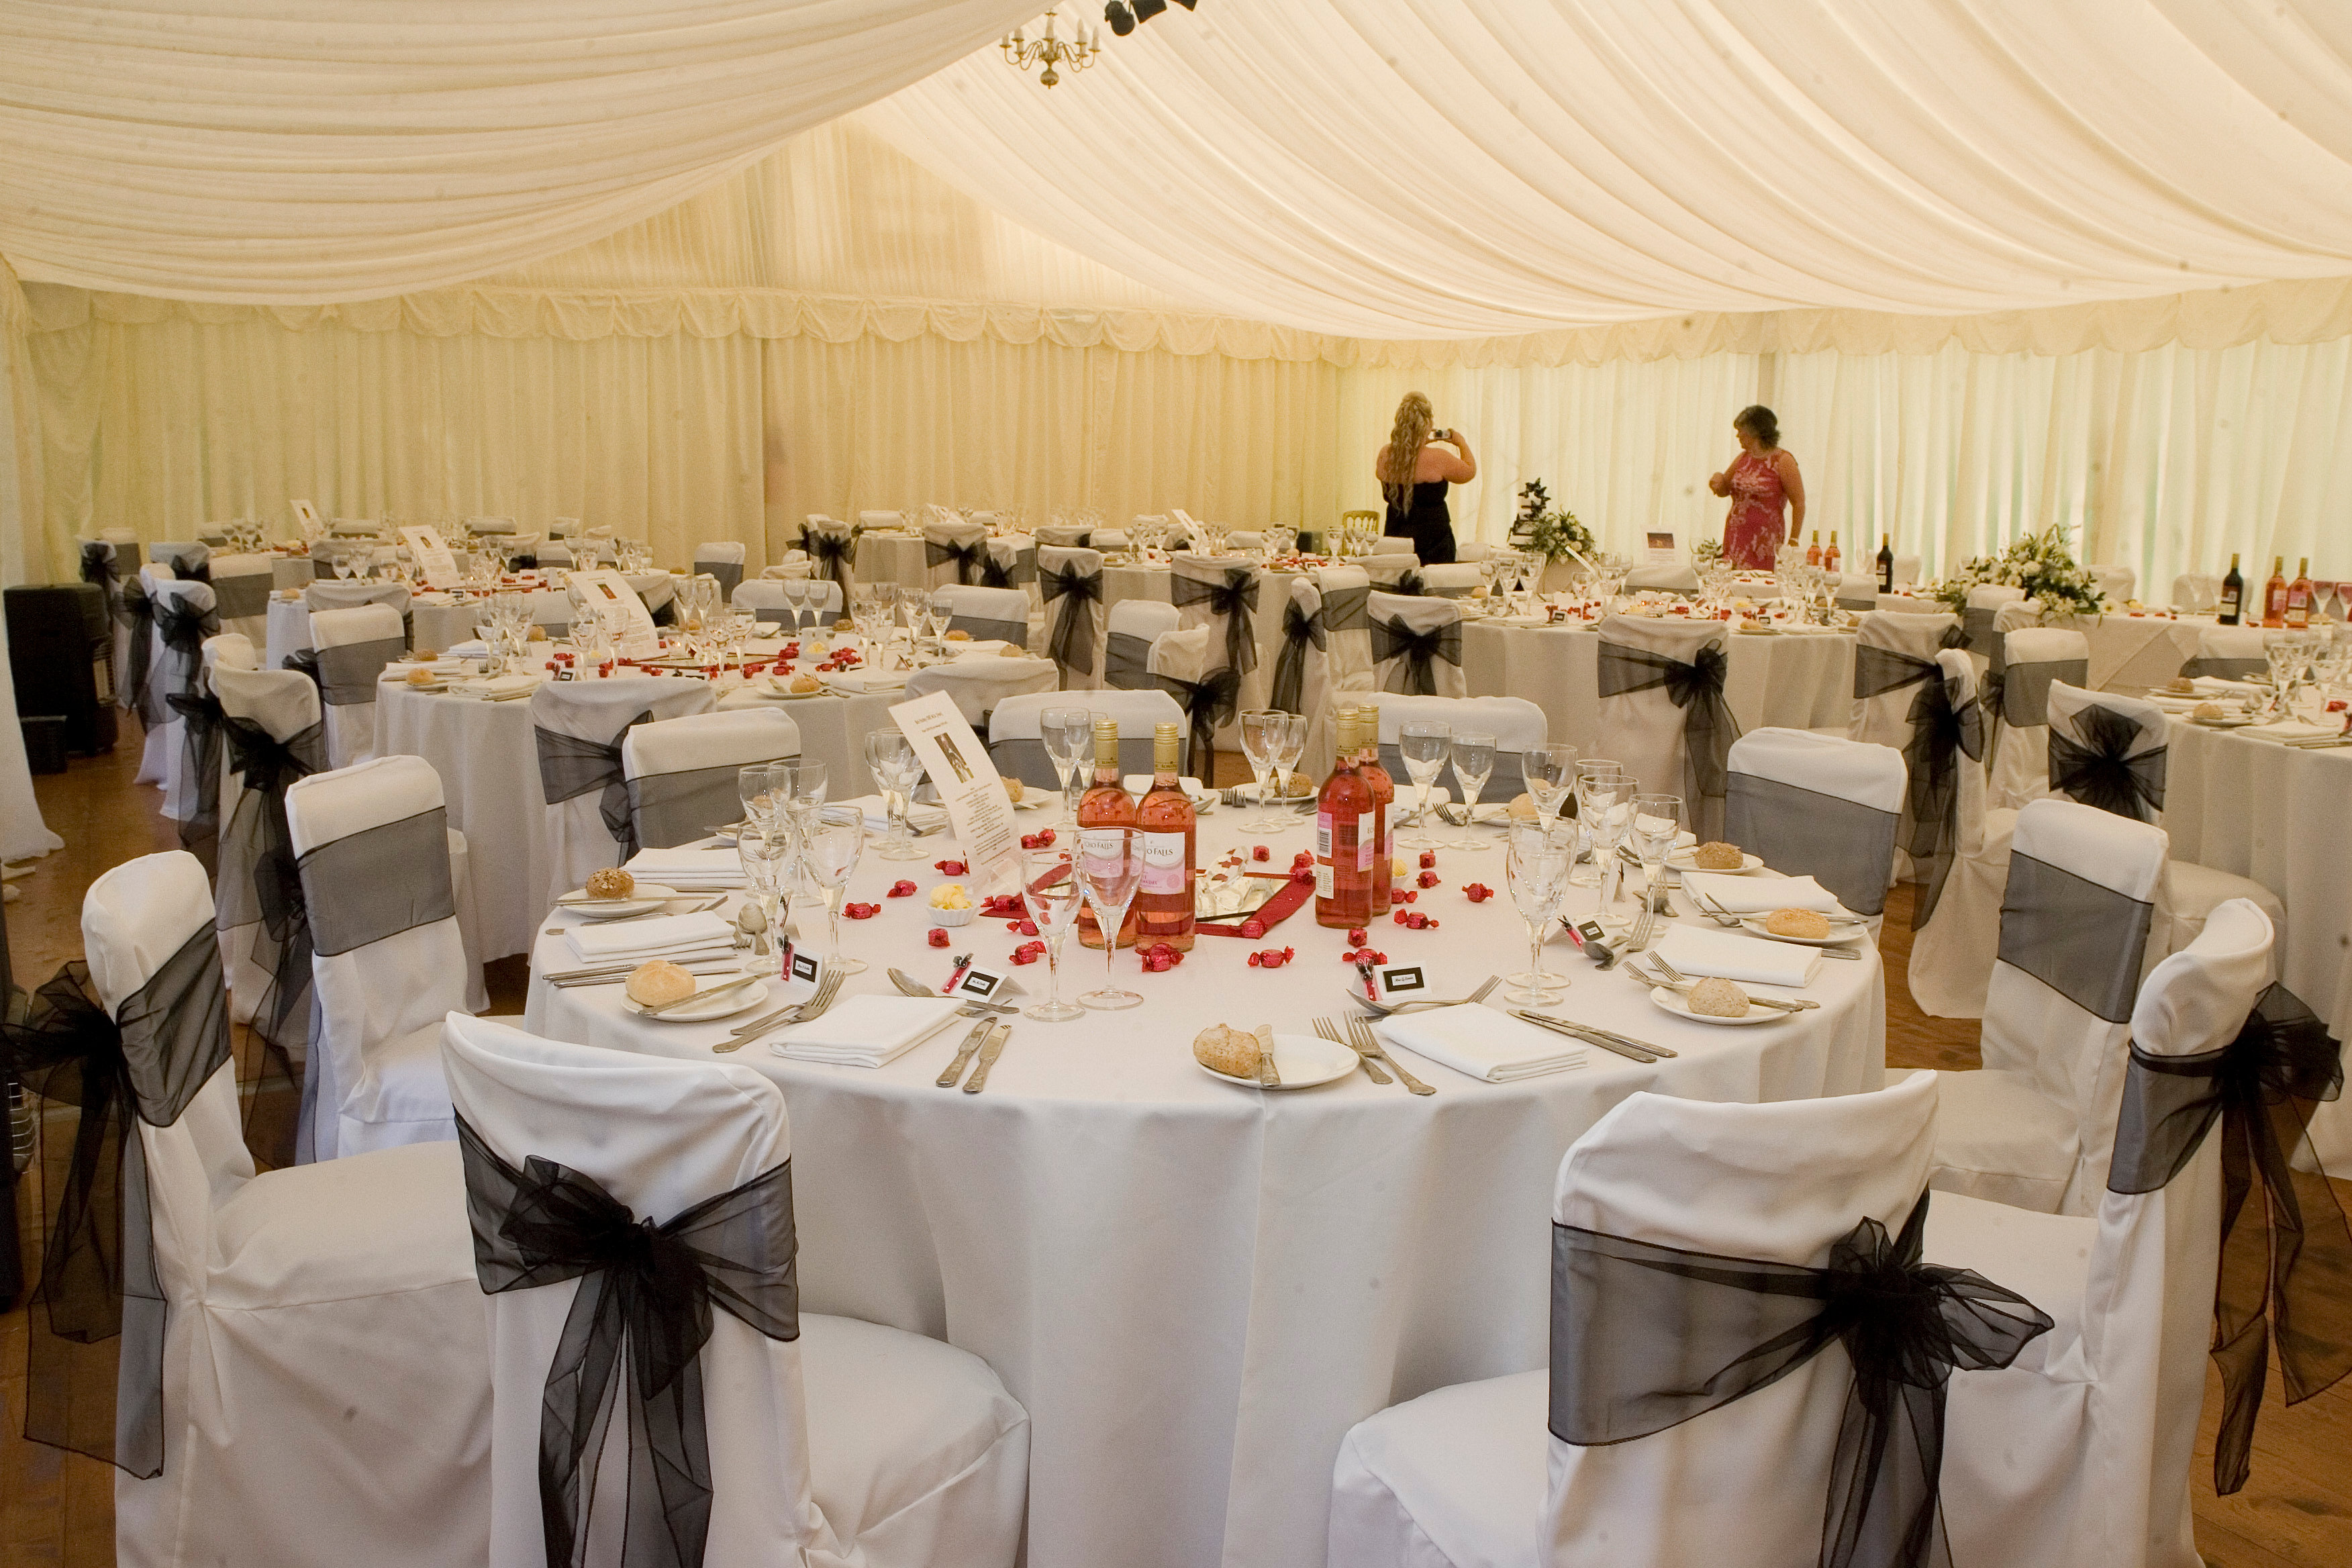 wedding chair covers gloucester kids table and chairs kmart forest of dean cover hire event decoration weddings